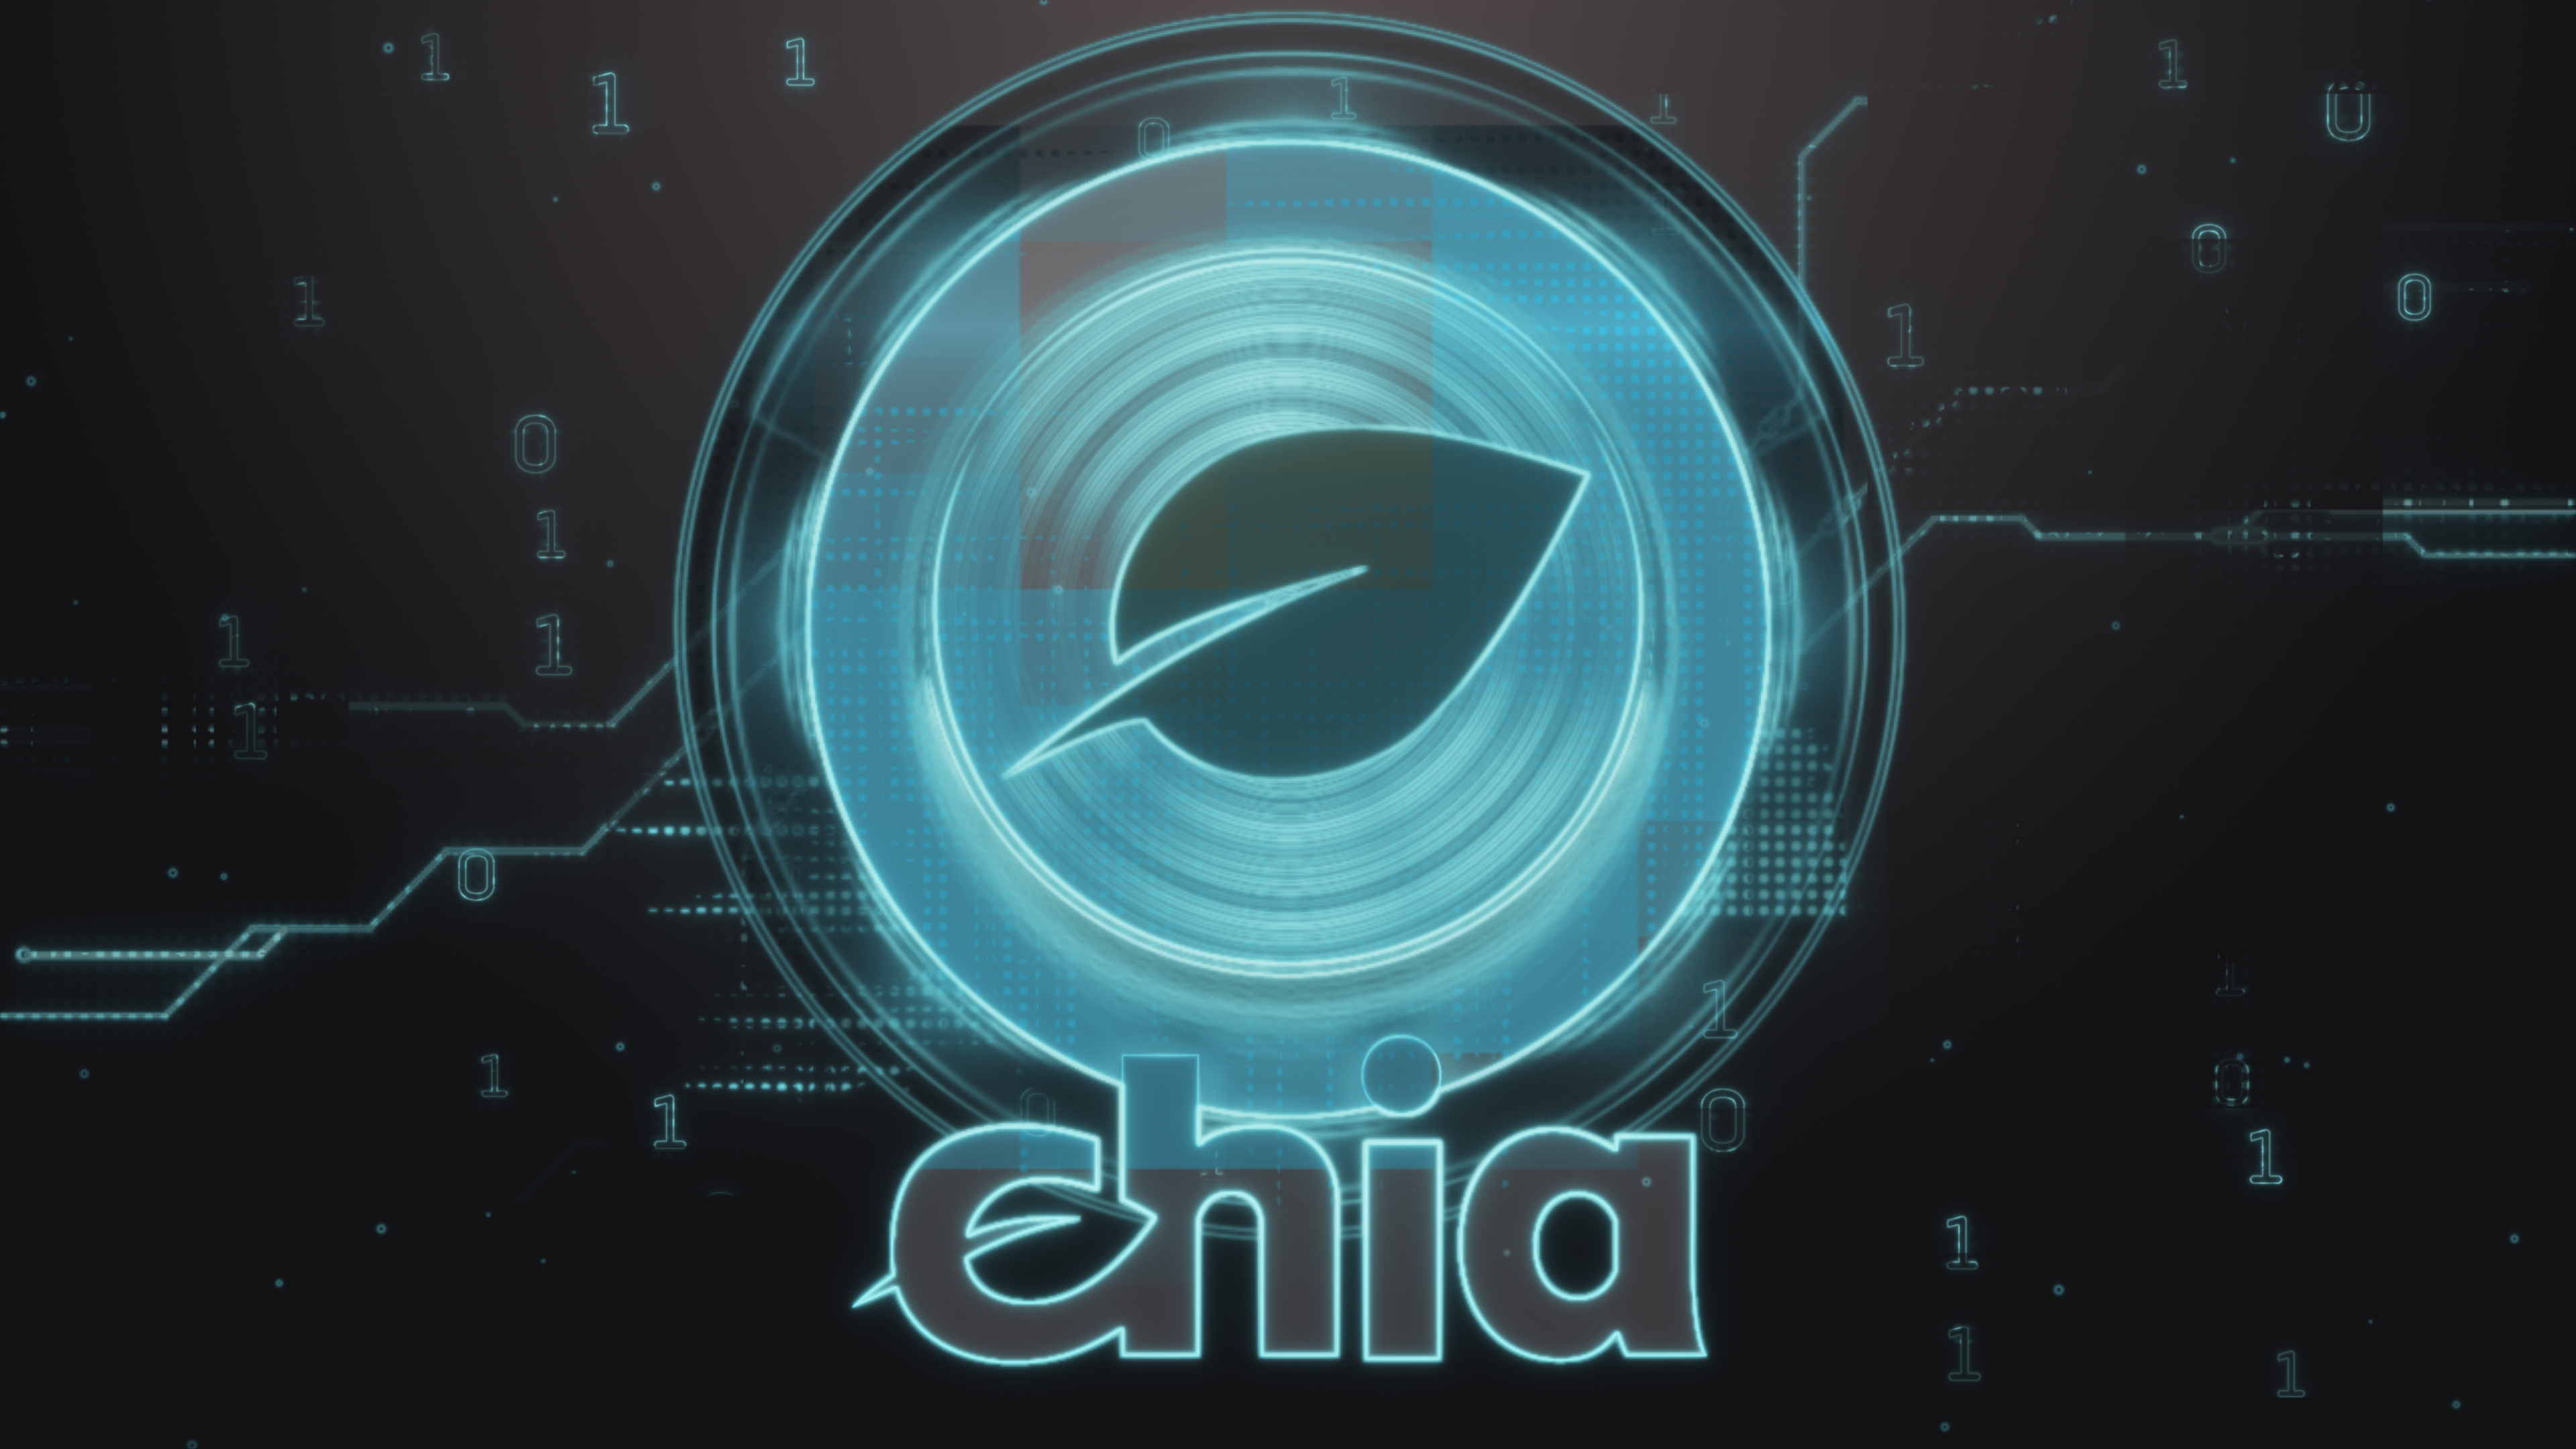 Chia coin explained